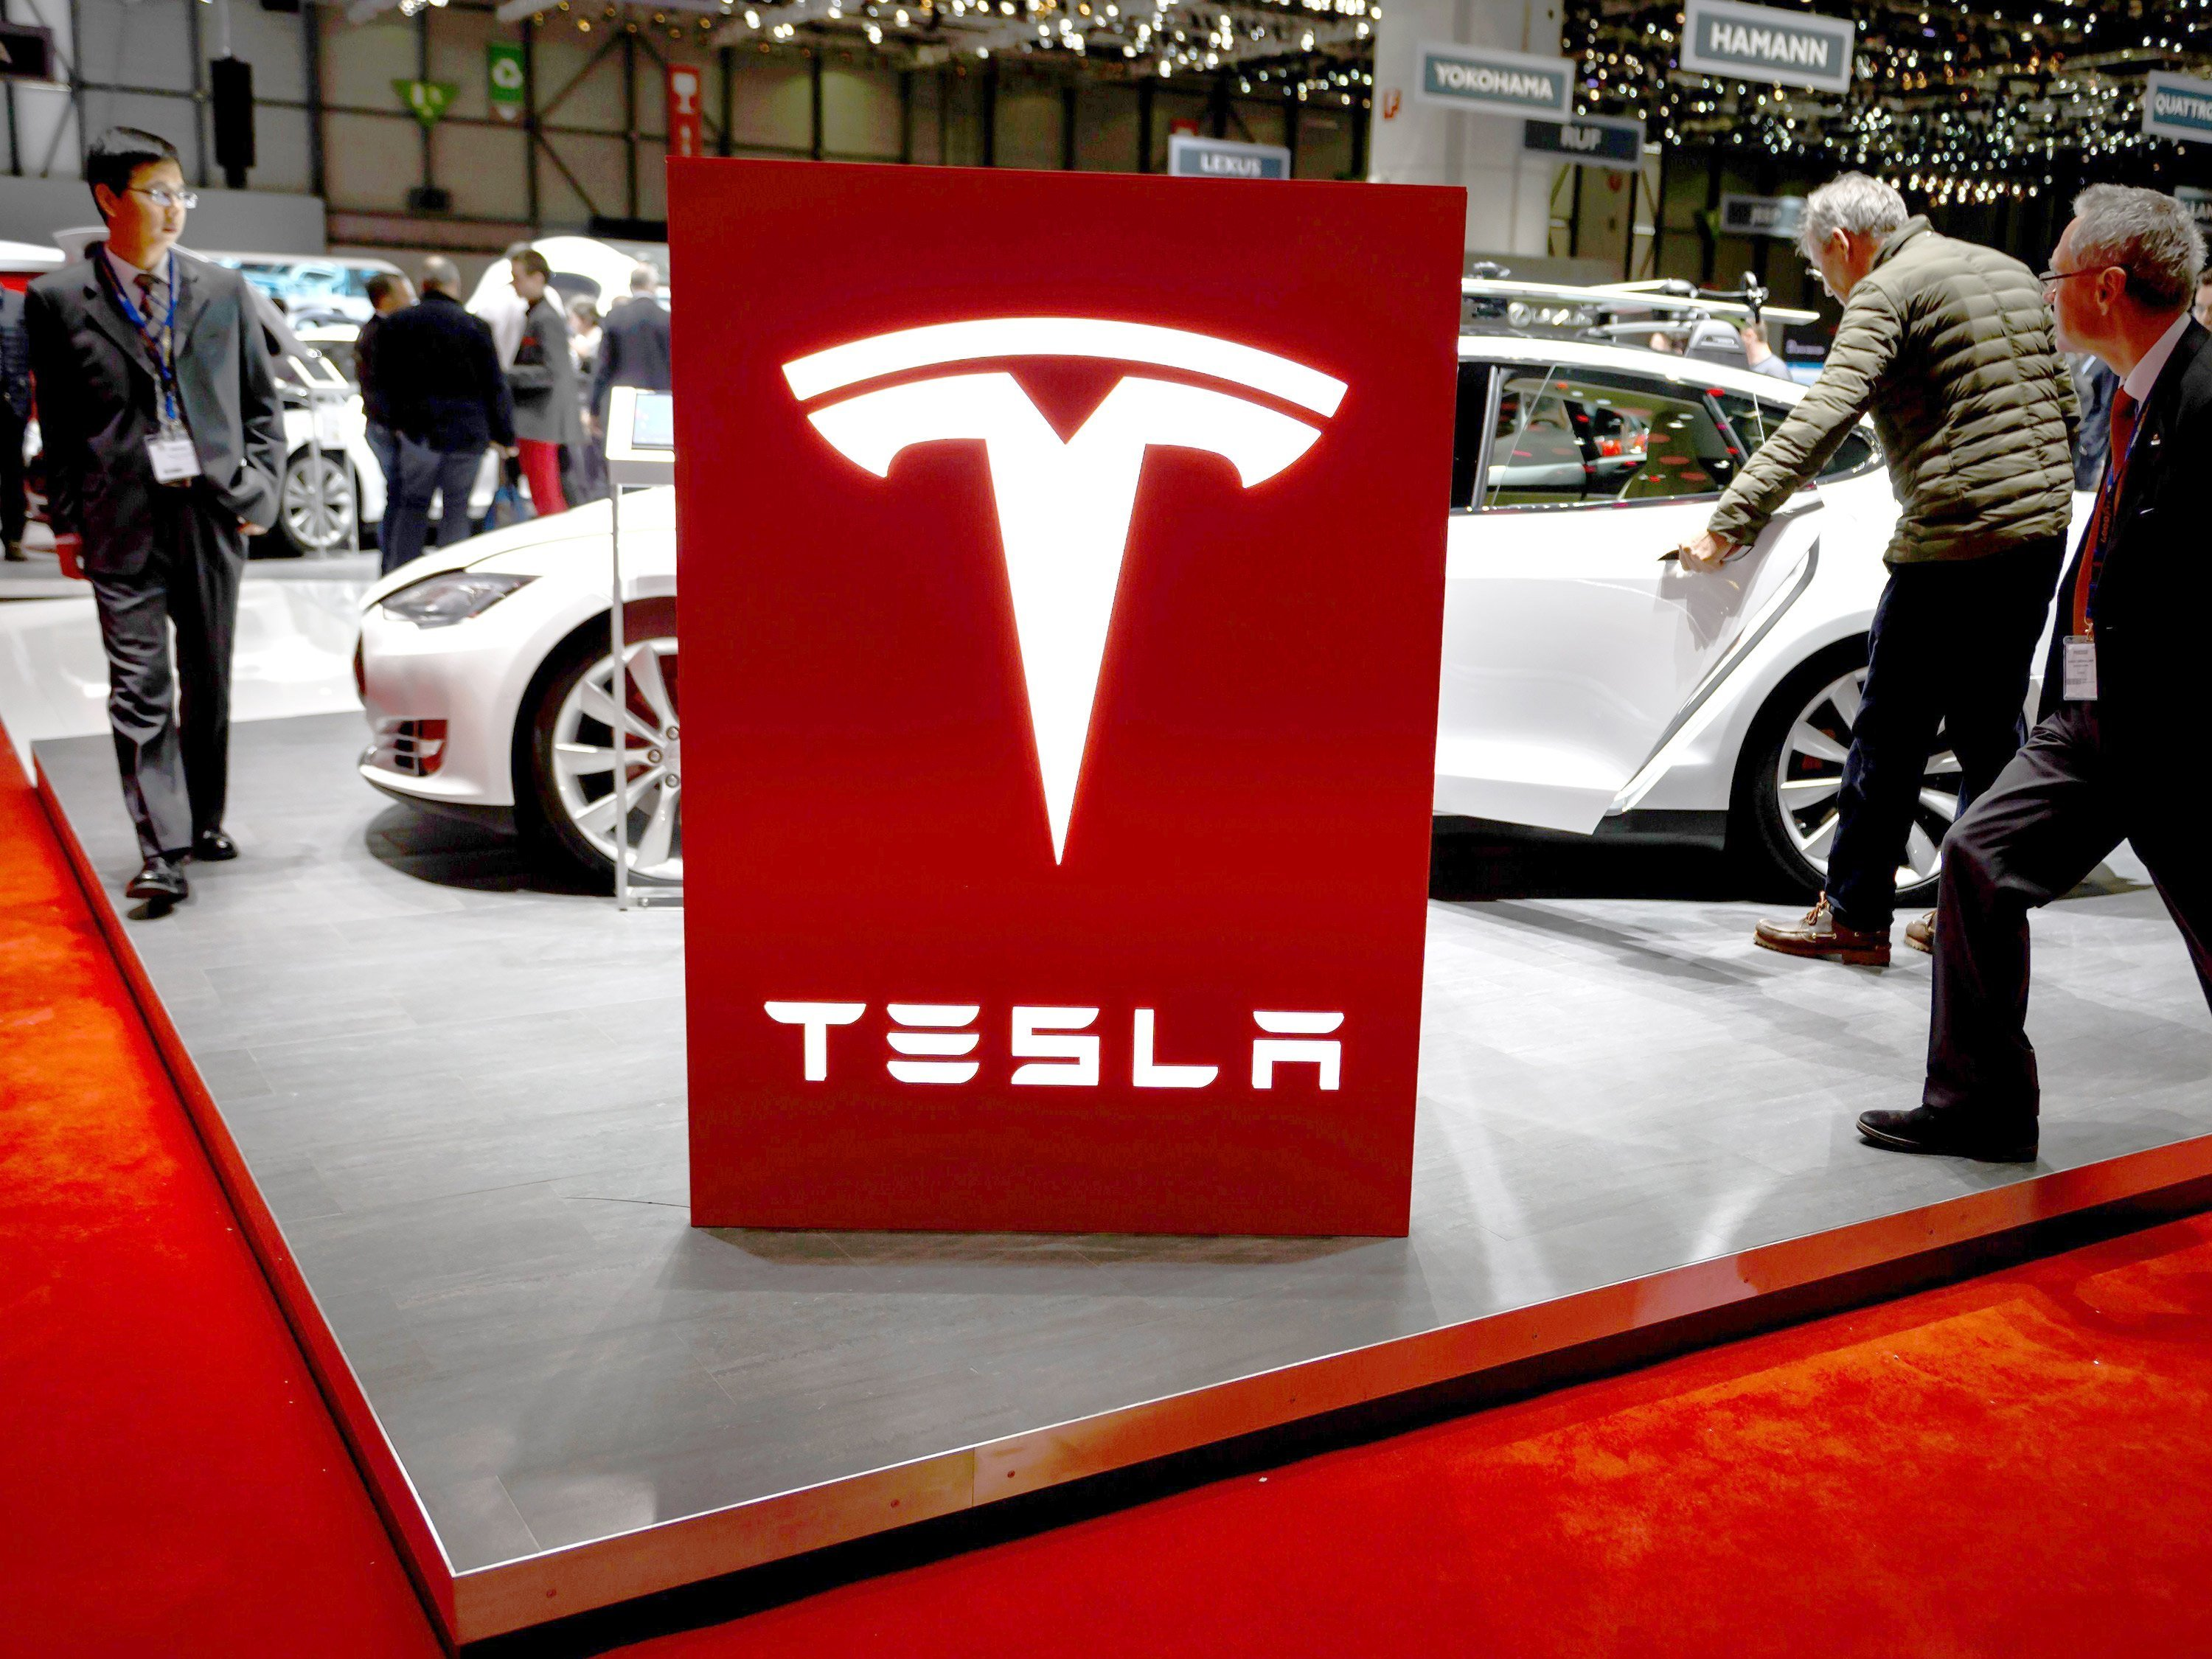 Inspection opened into Tesla for workplace safety